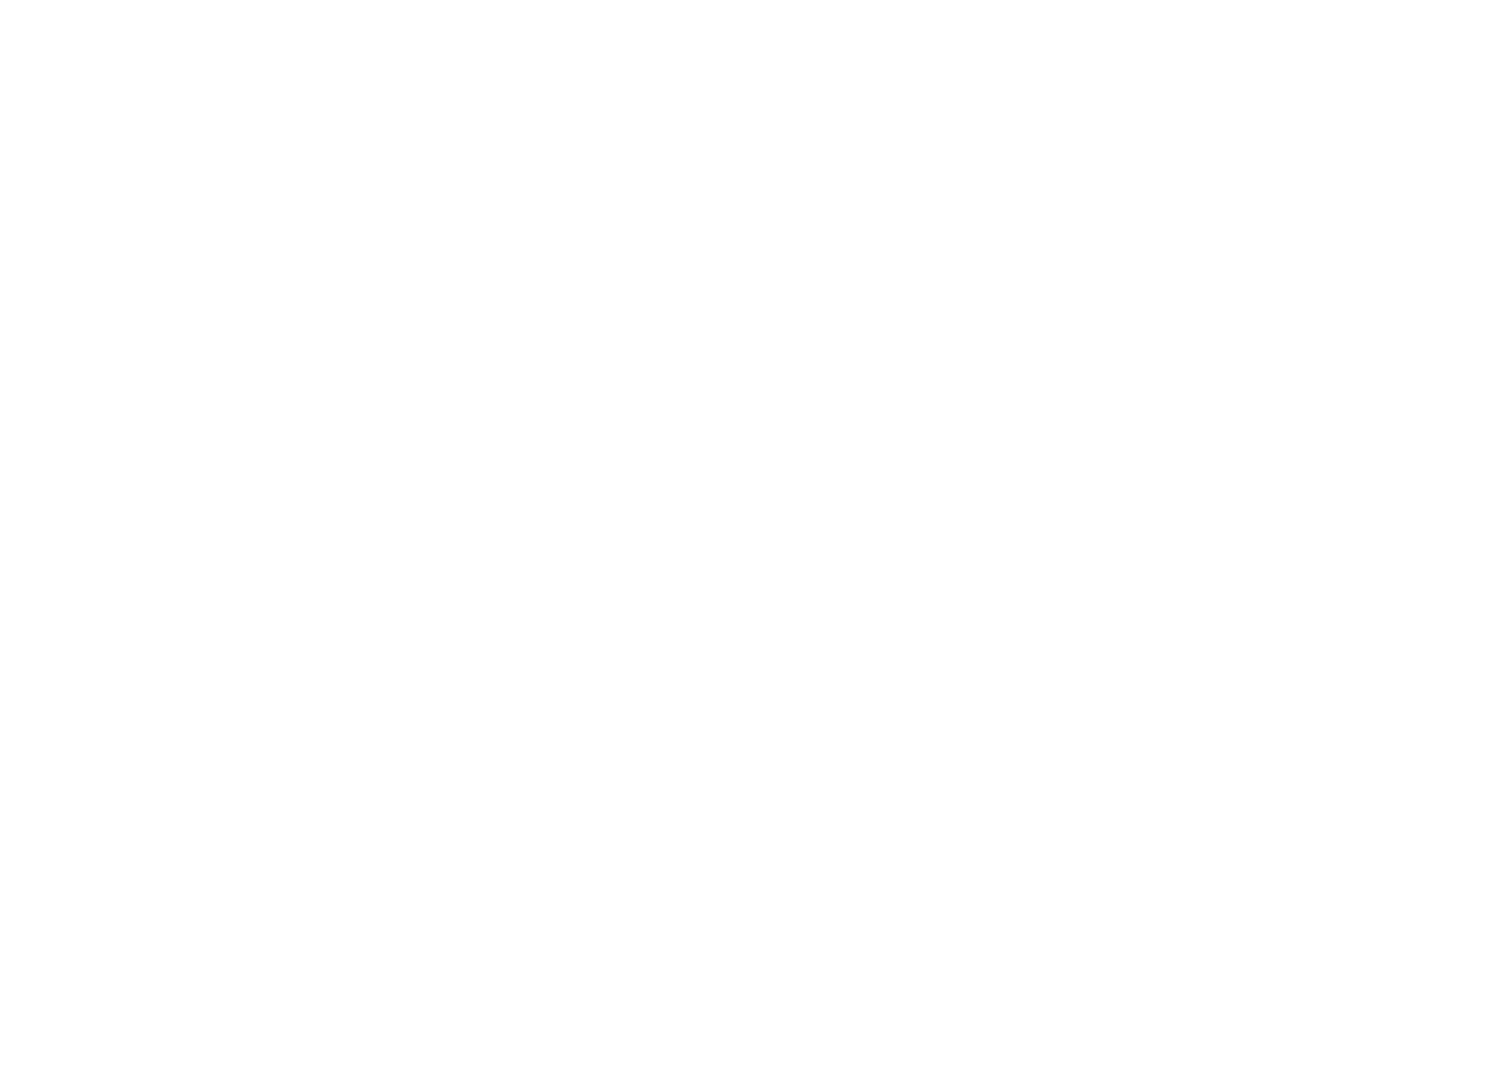 Chronus Health blood testing CBC and CMP in minutes, not days